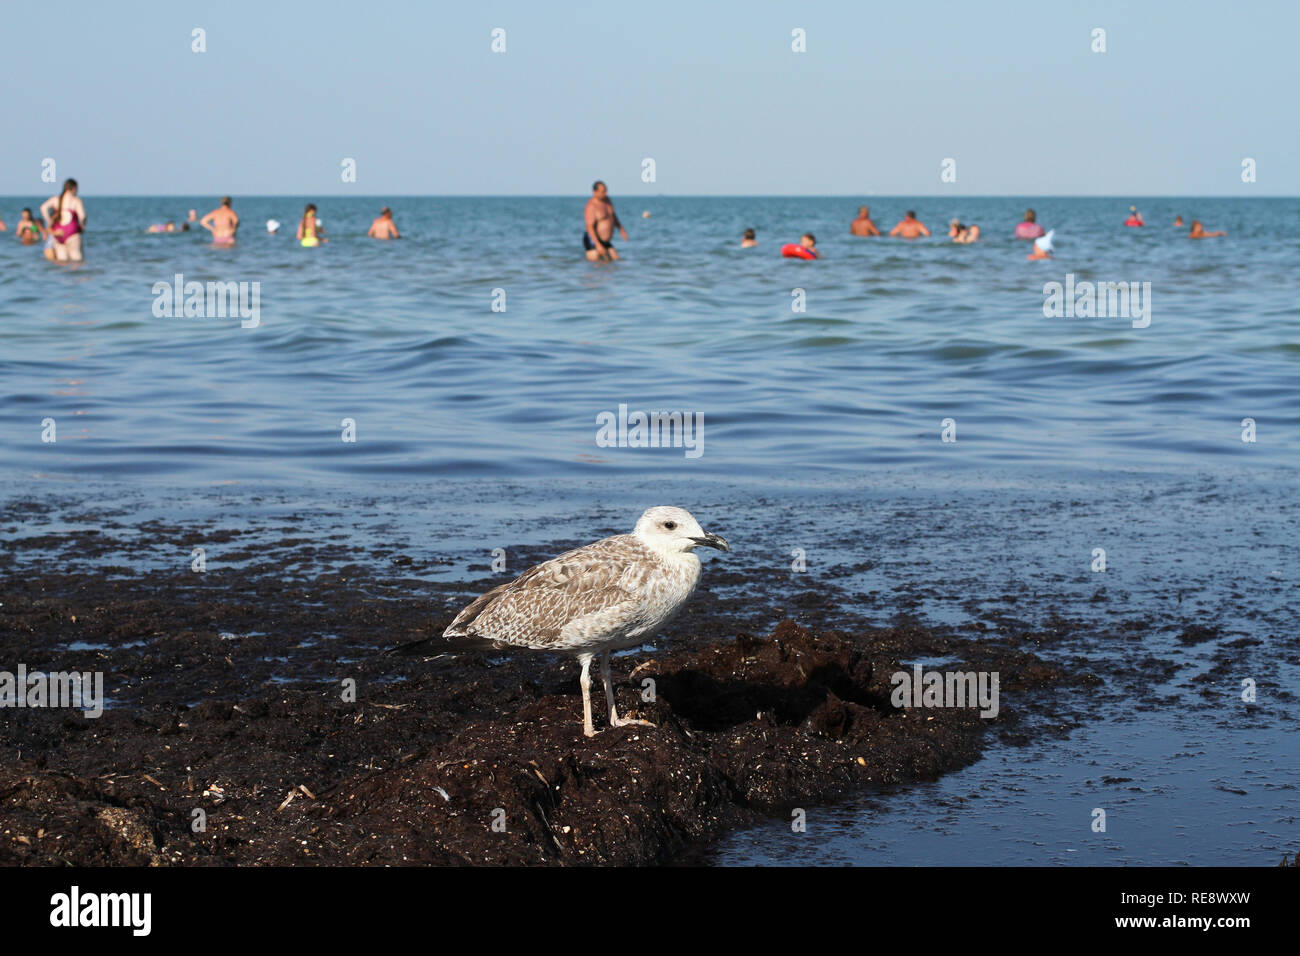 Seagull walk on dirty from algae shore after storm. Arabat Spit in the Azov Sea. August 2018 - Stock Image